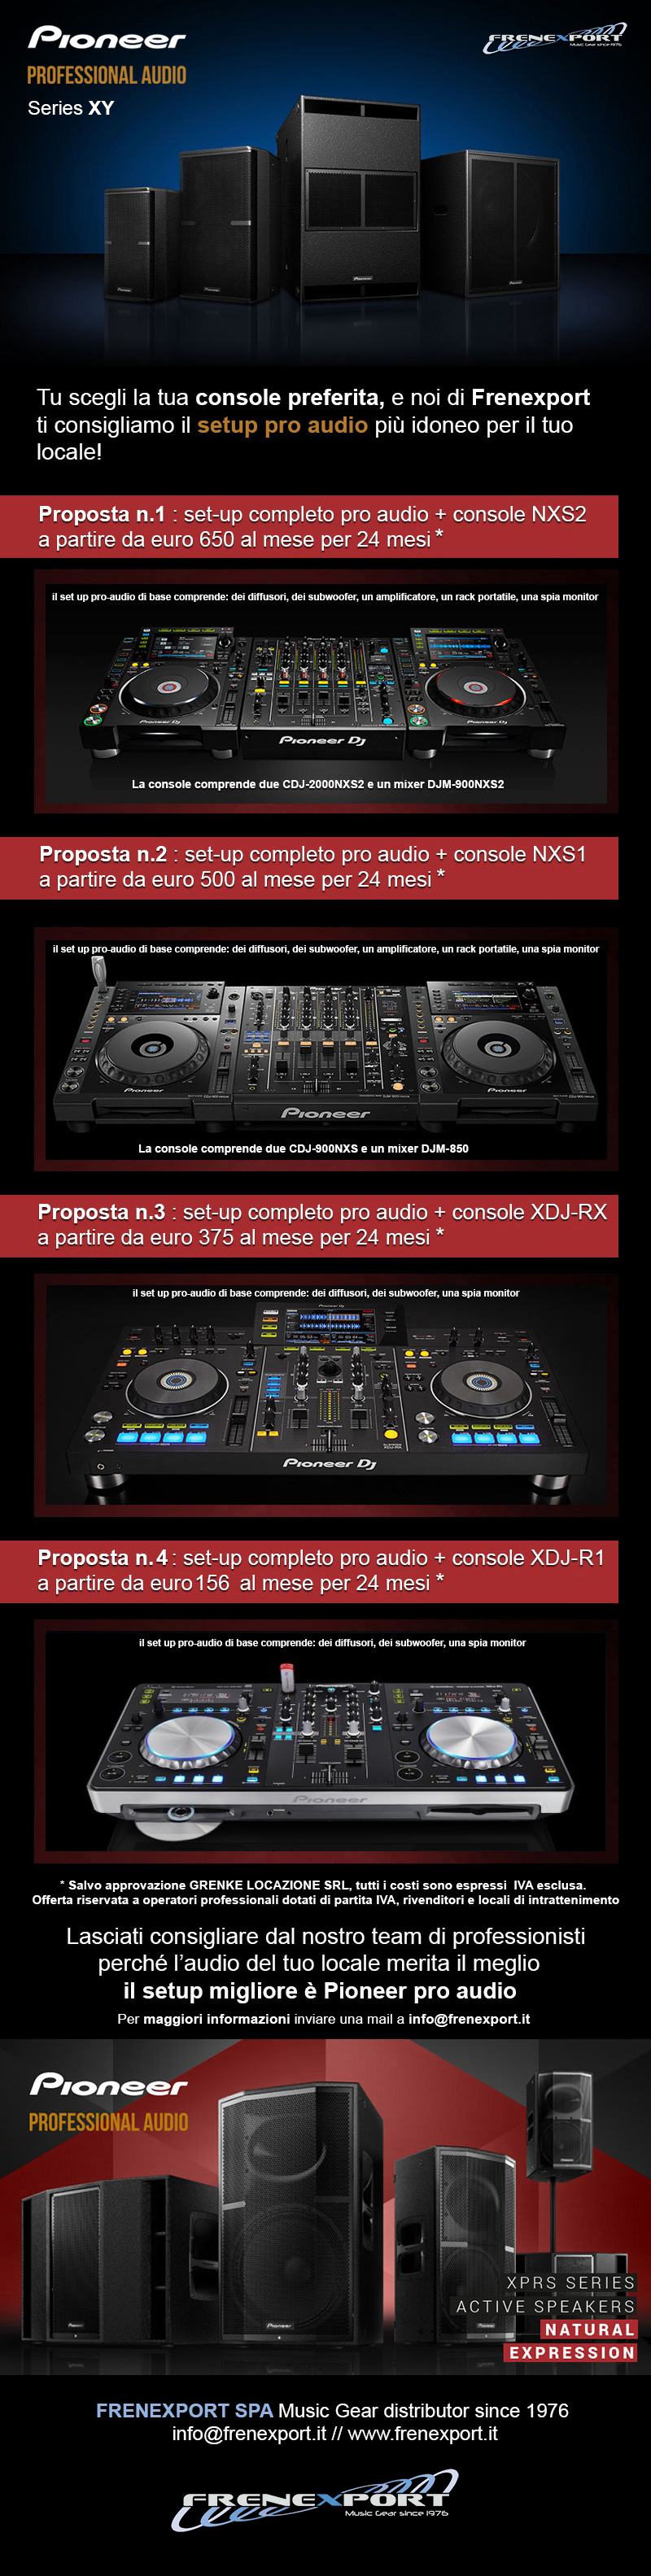 official-newsletter-final-pioneerproaudio-clubtelevision-tv